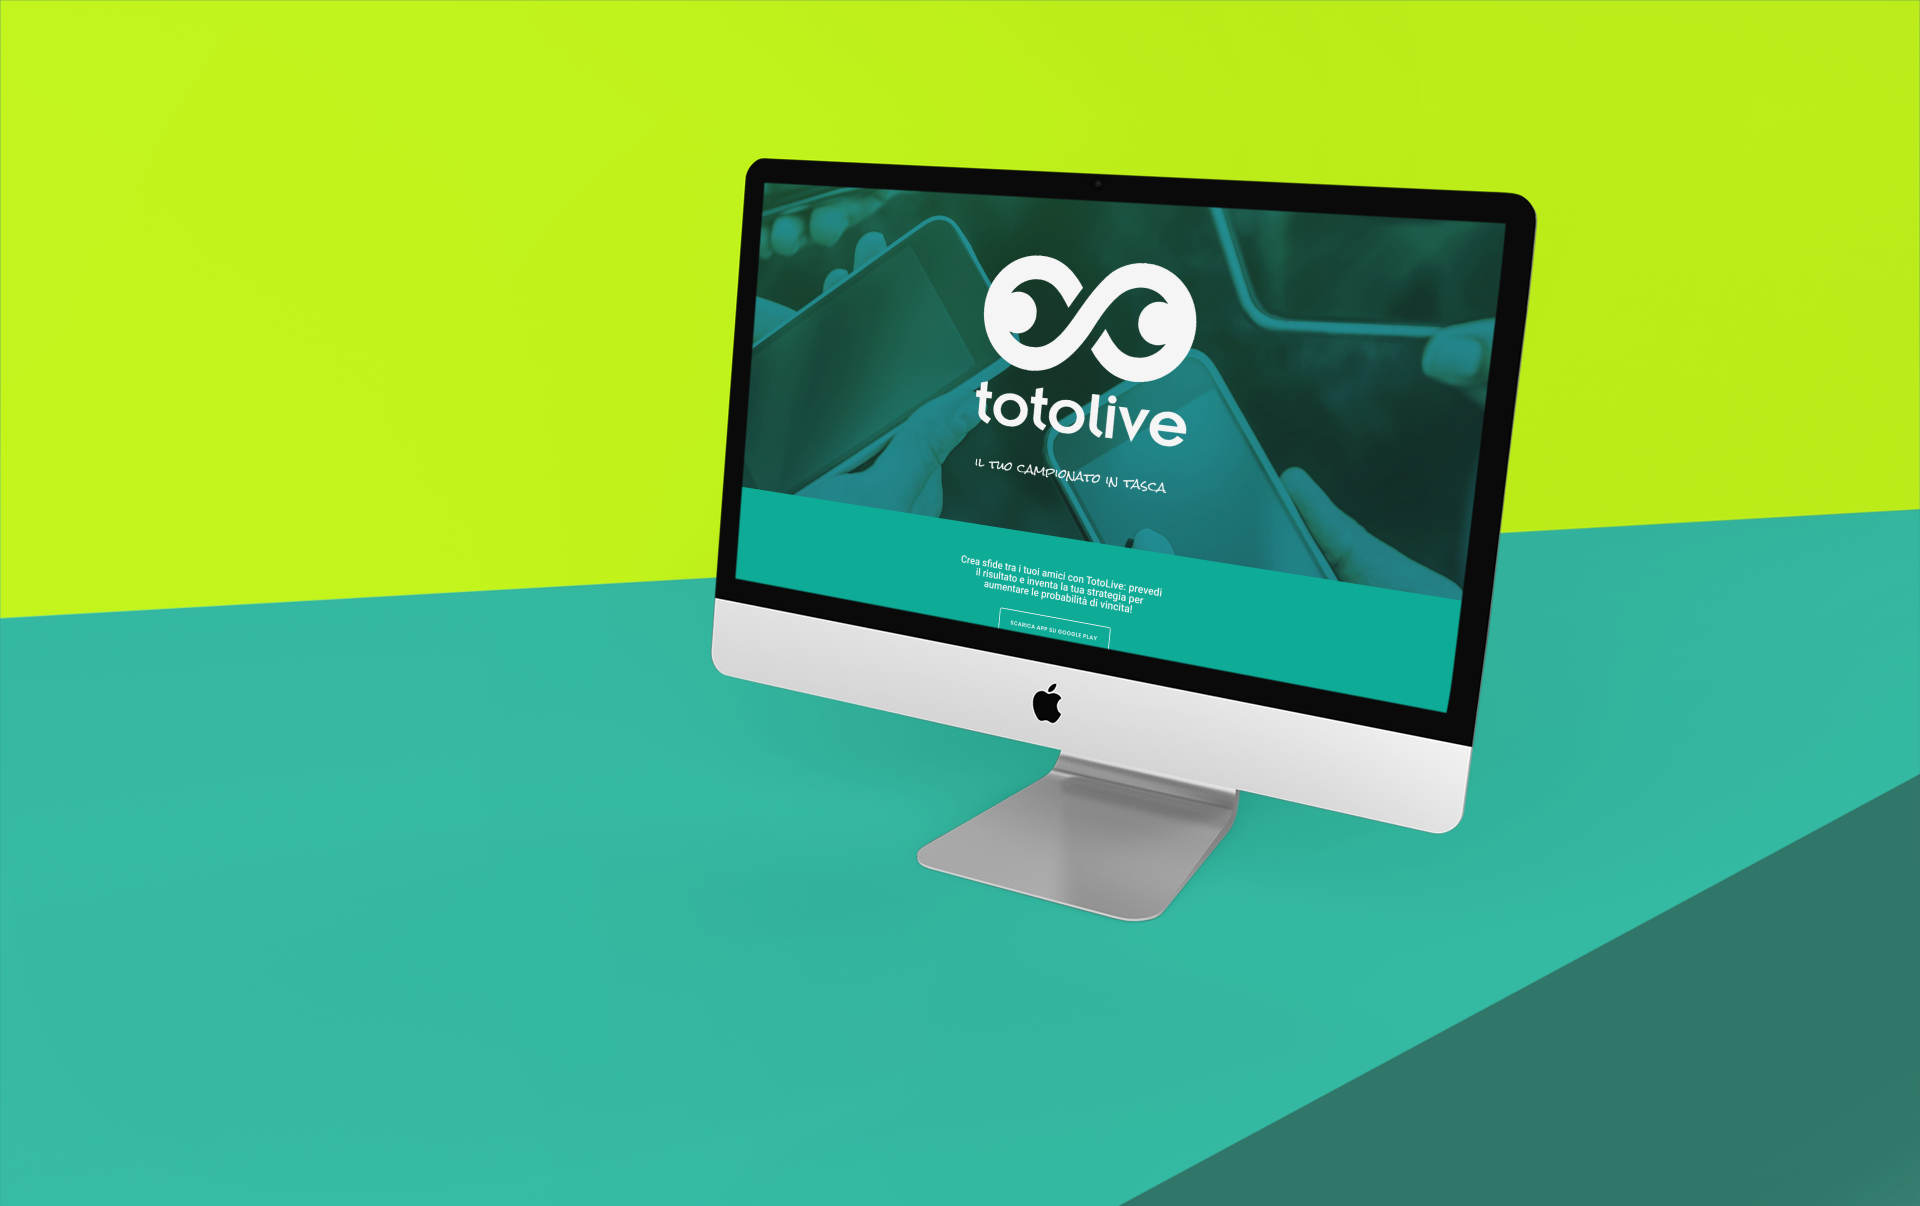 totolive2